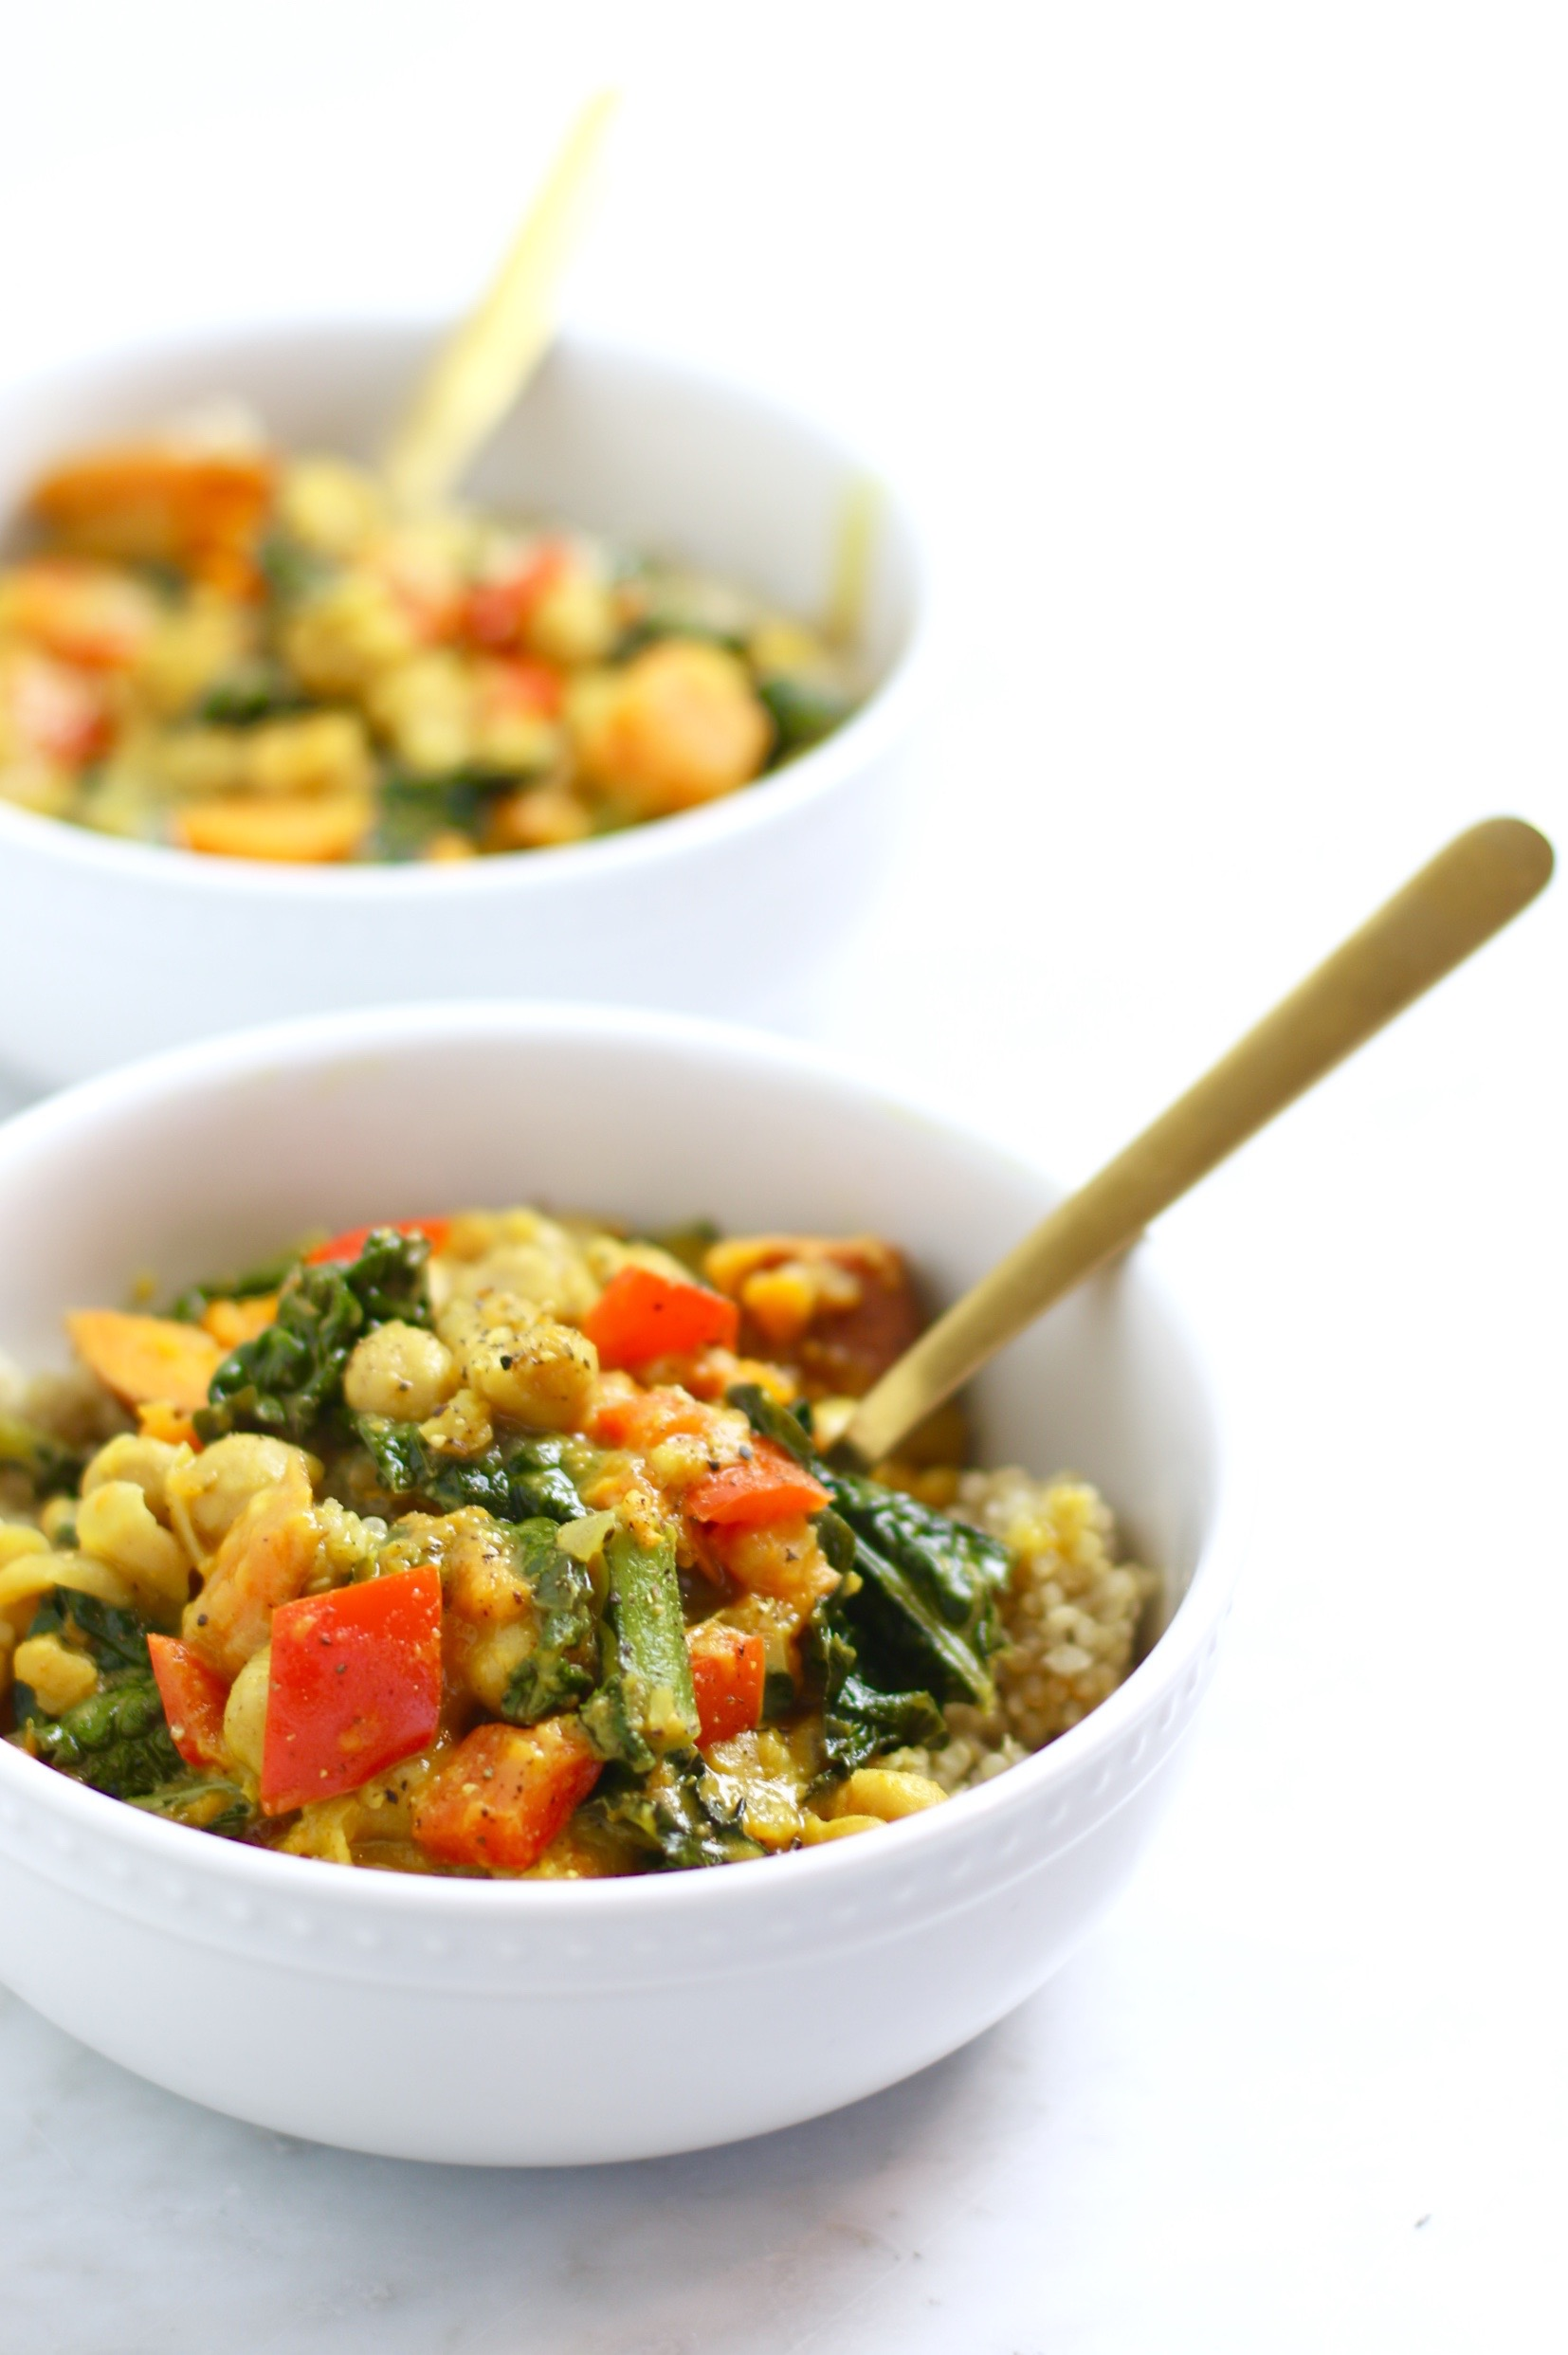 Easy Chickpea Coconut Curry Recipe - vegan, gluten-free